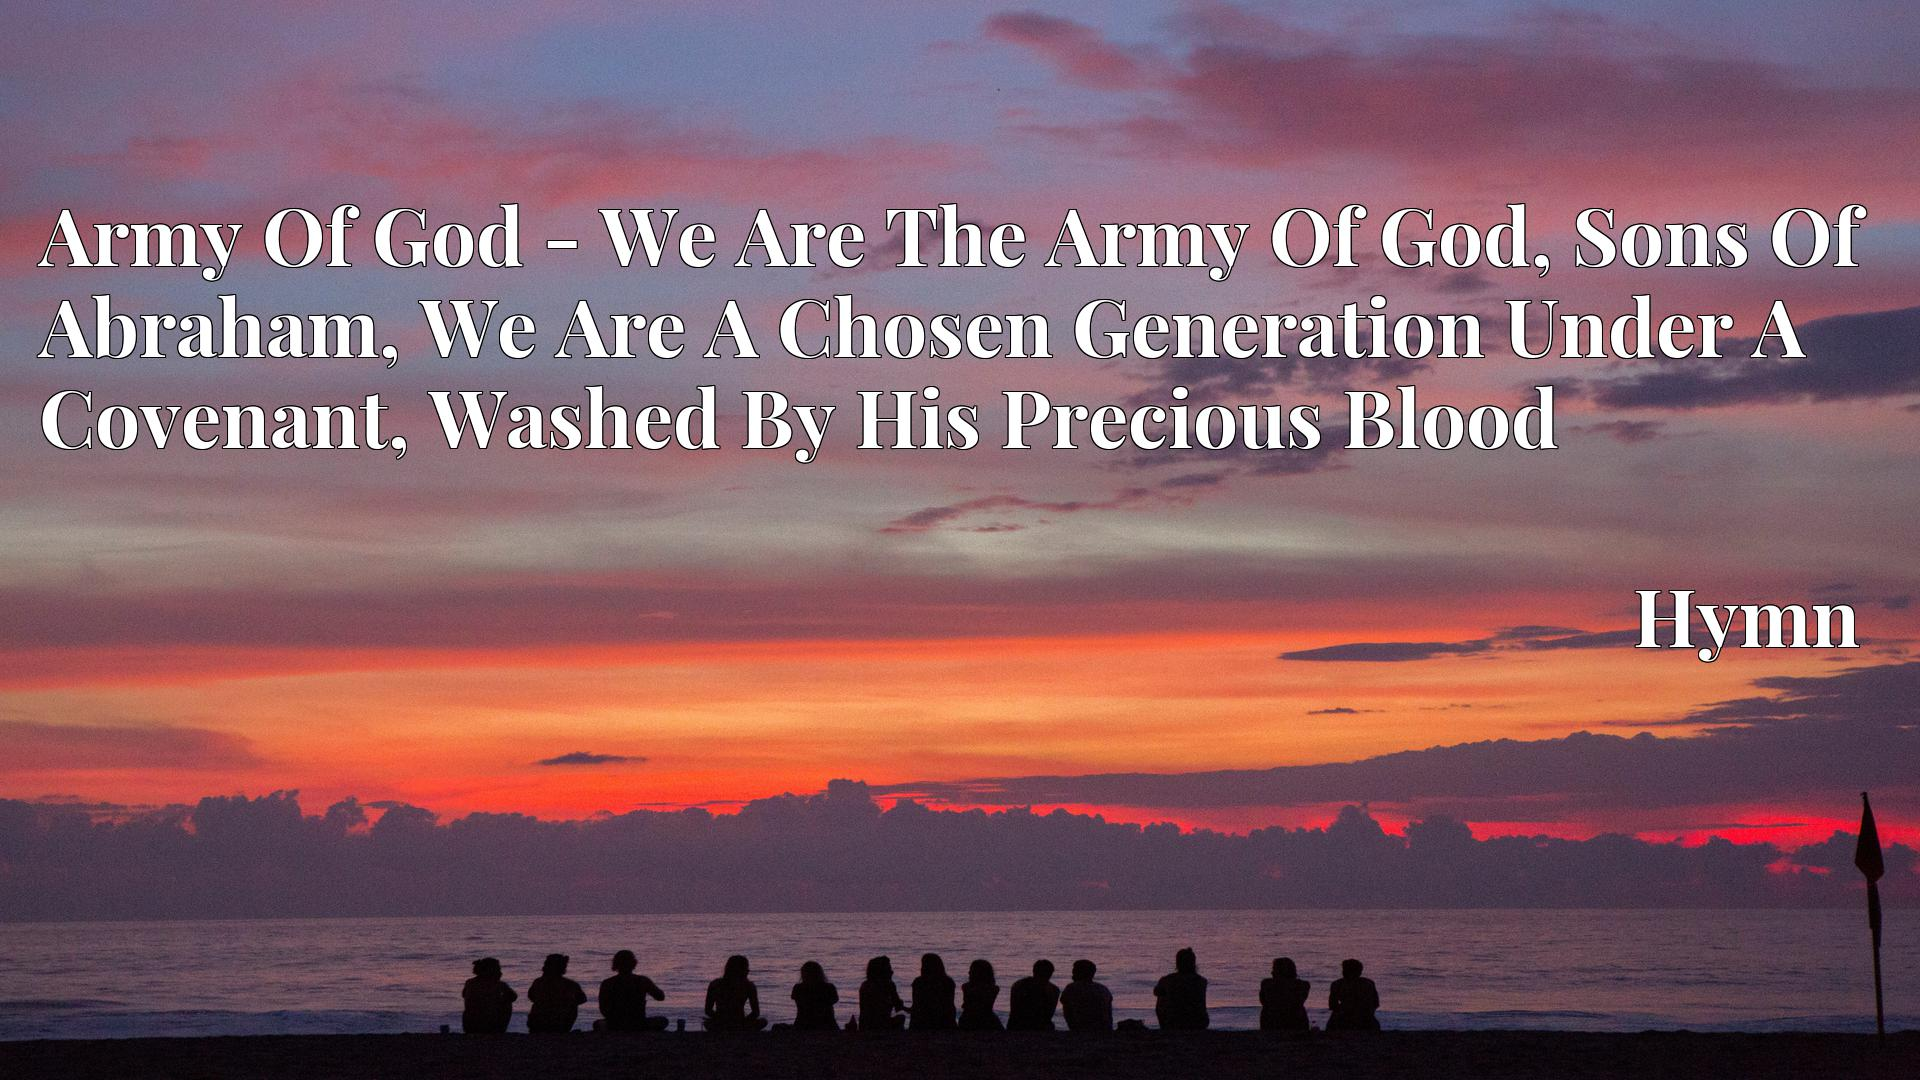 Army Of God - We Are The Army Of God, Sons Of Abraham, We Are A Chosen Generation Under A Covenant, Washed By His Precious Blood - Hymn